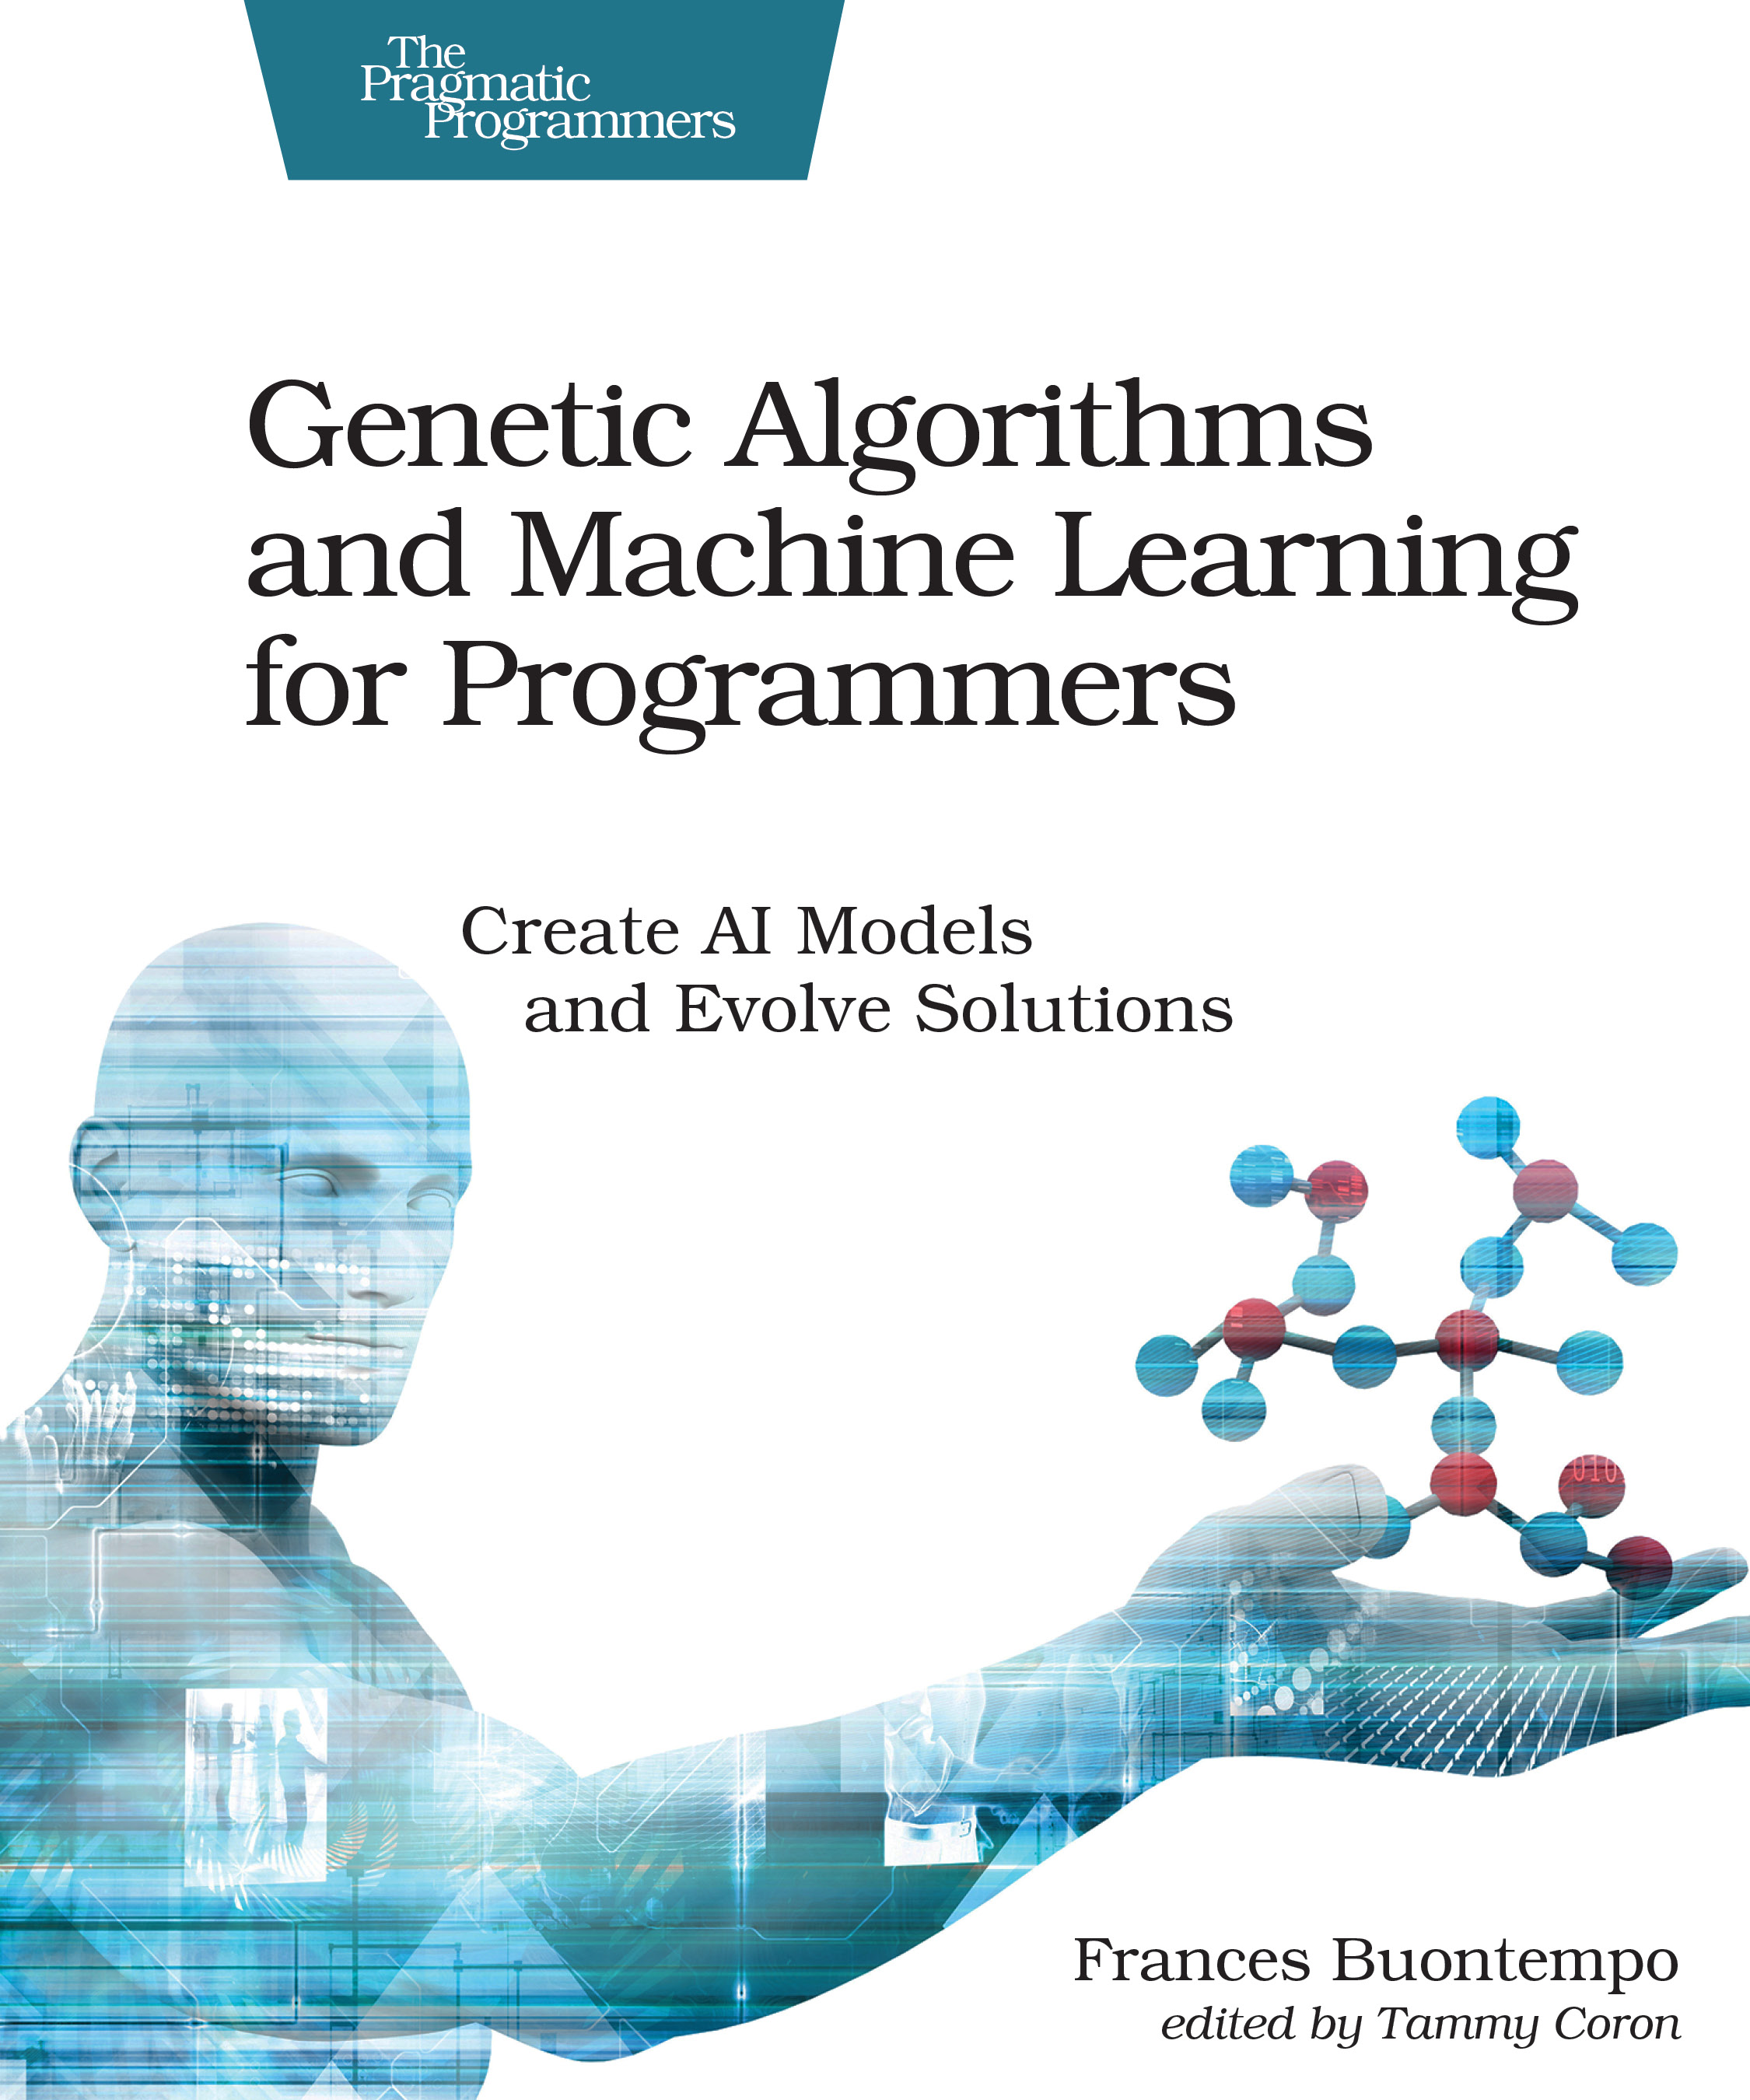 Cover of the book  Genetic Algorithms and Machine Learning for Programmers  by Frances Buontempo, published in 2019 by The Pragmatic Programmer -  https://pragprog.com/book/fbmach/ge